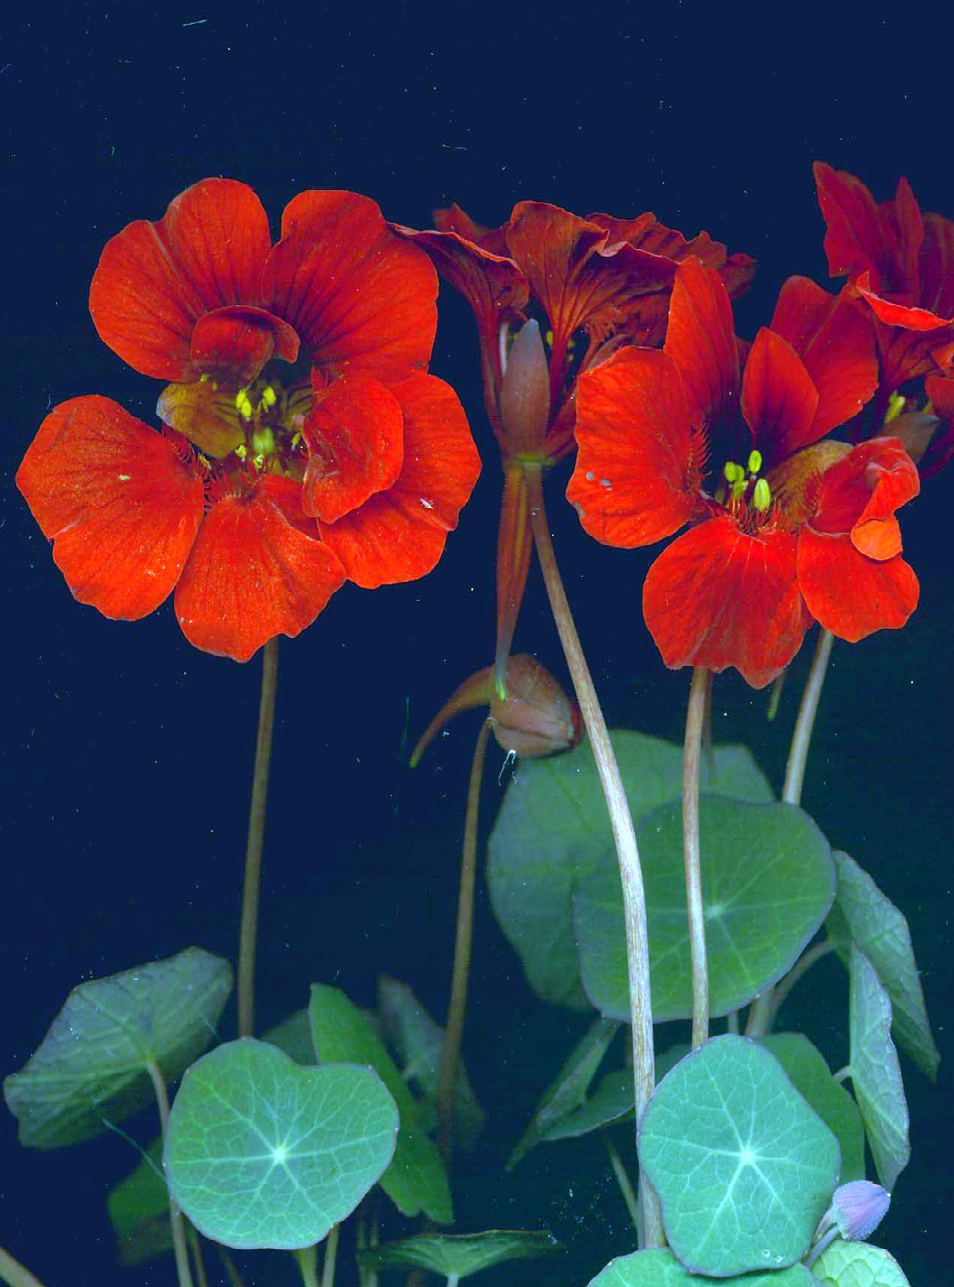 RED NASTURTIUM 'Empress of India' - Tropaeolum minus